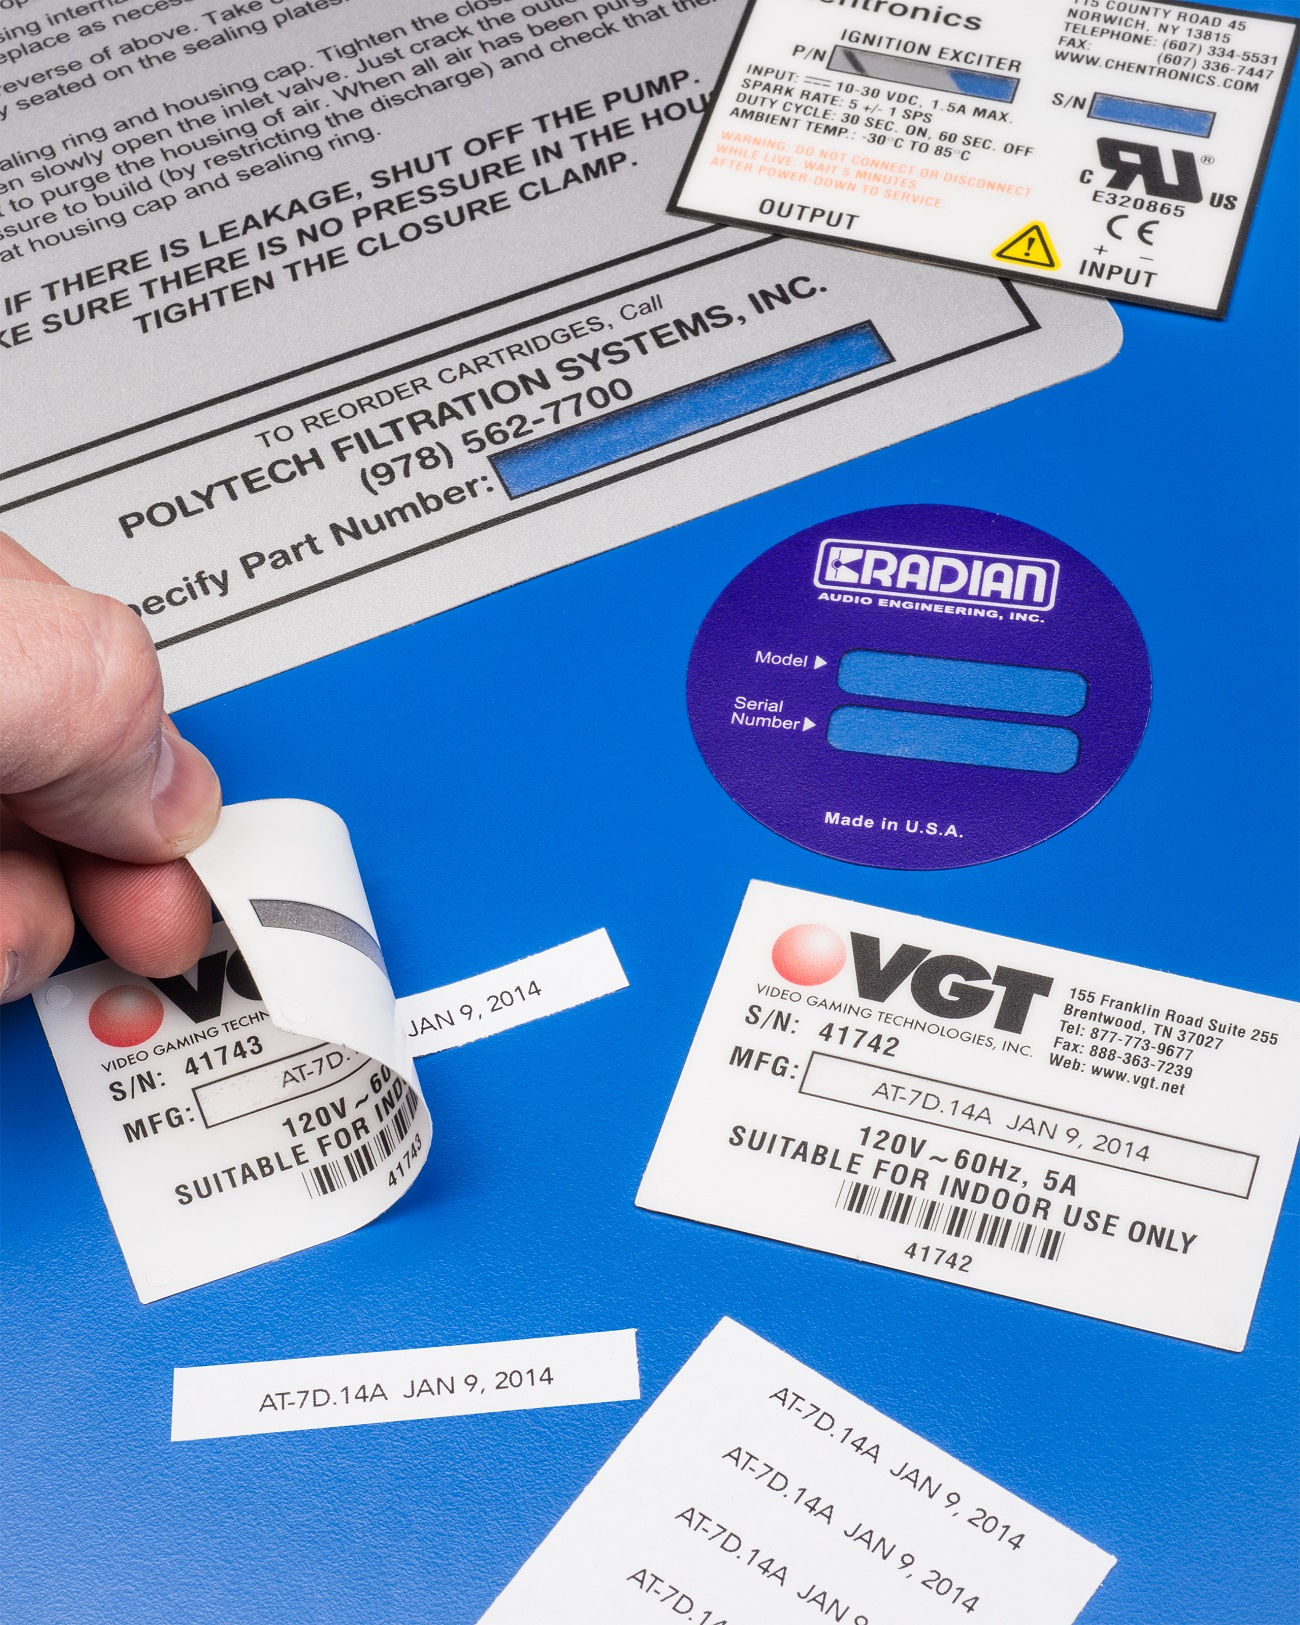 PRODUCT IDENTIFICATION LABELS ACCEPT VARIABLE DATA AND ARE TAMPER-PROOF